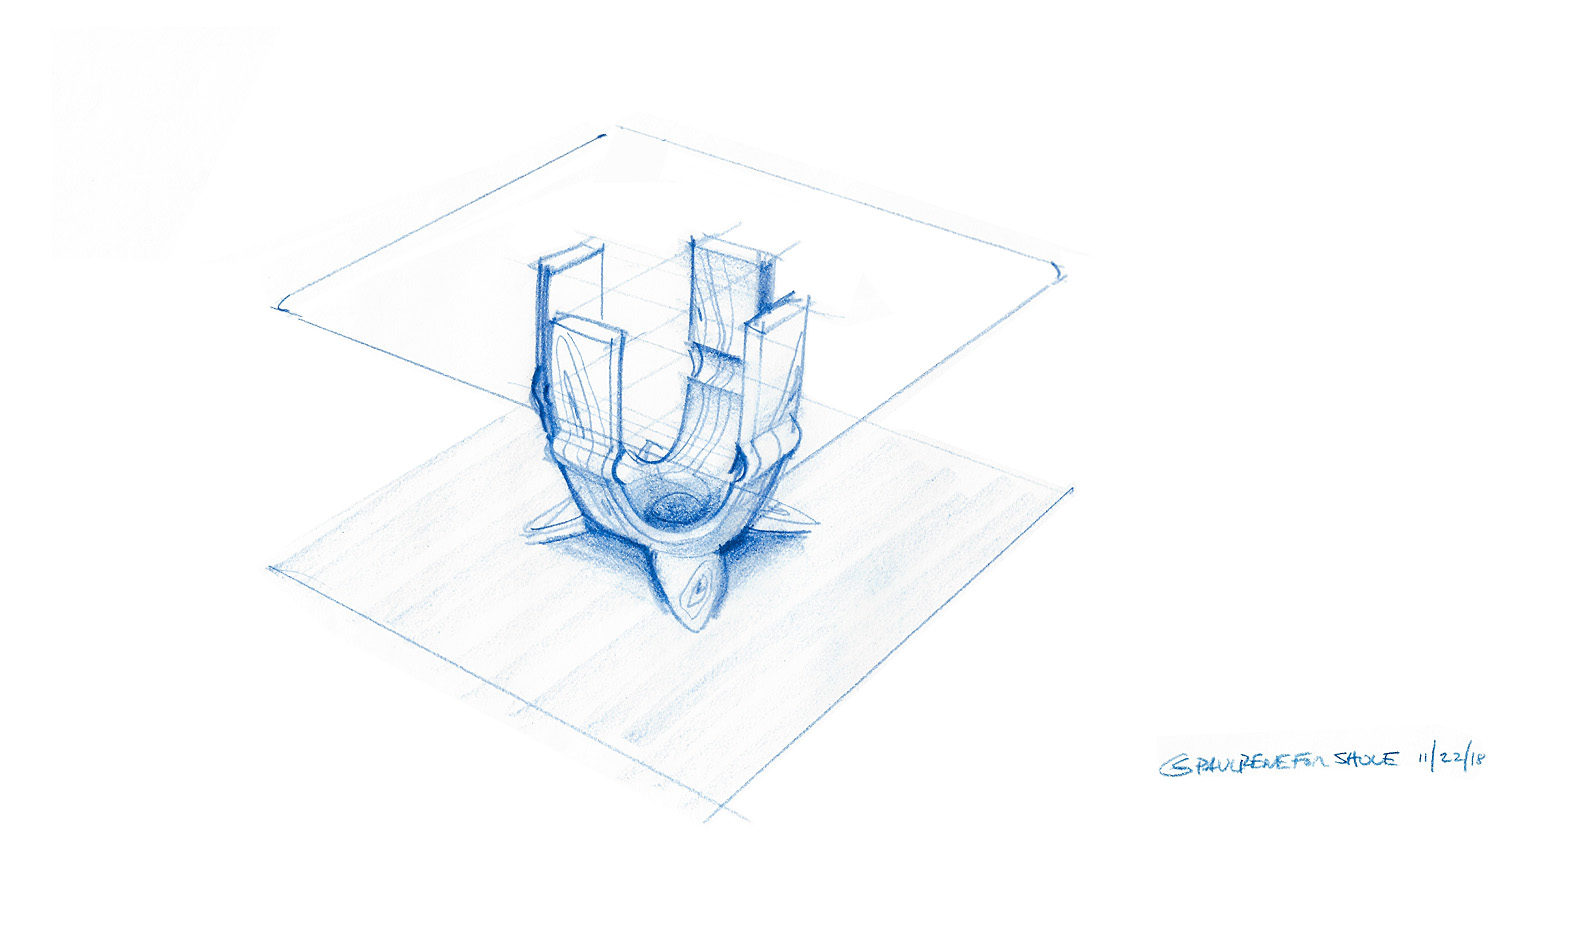 hand sketch by paul jeffrey